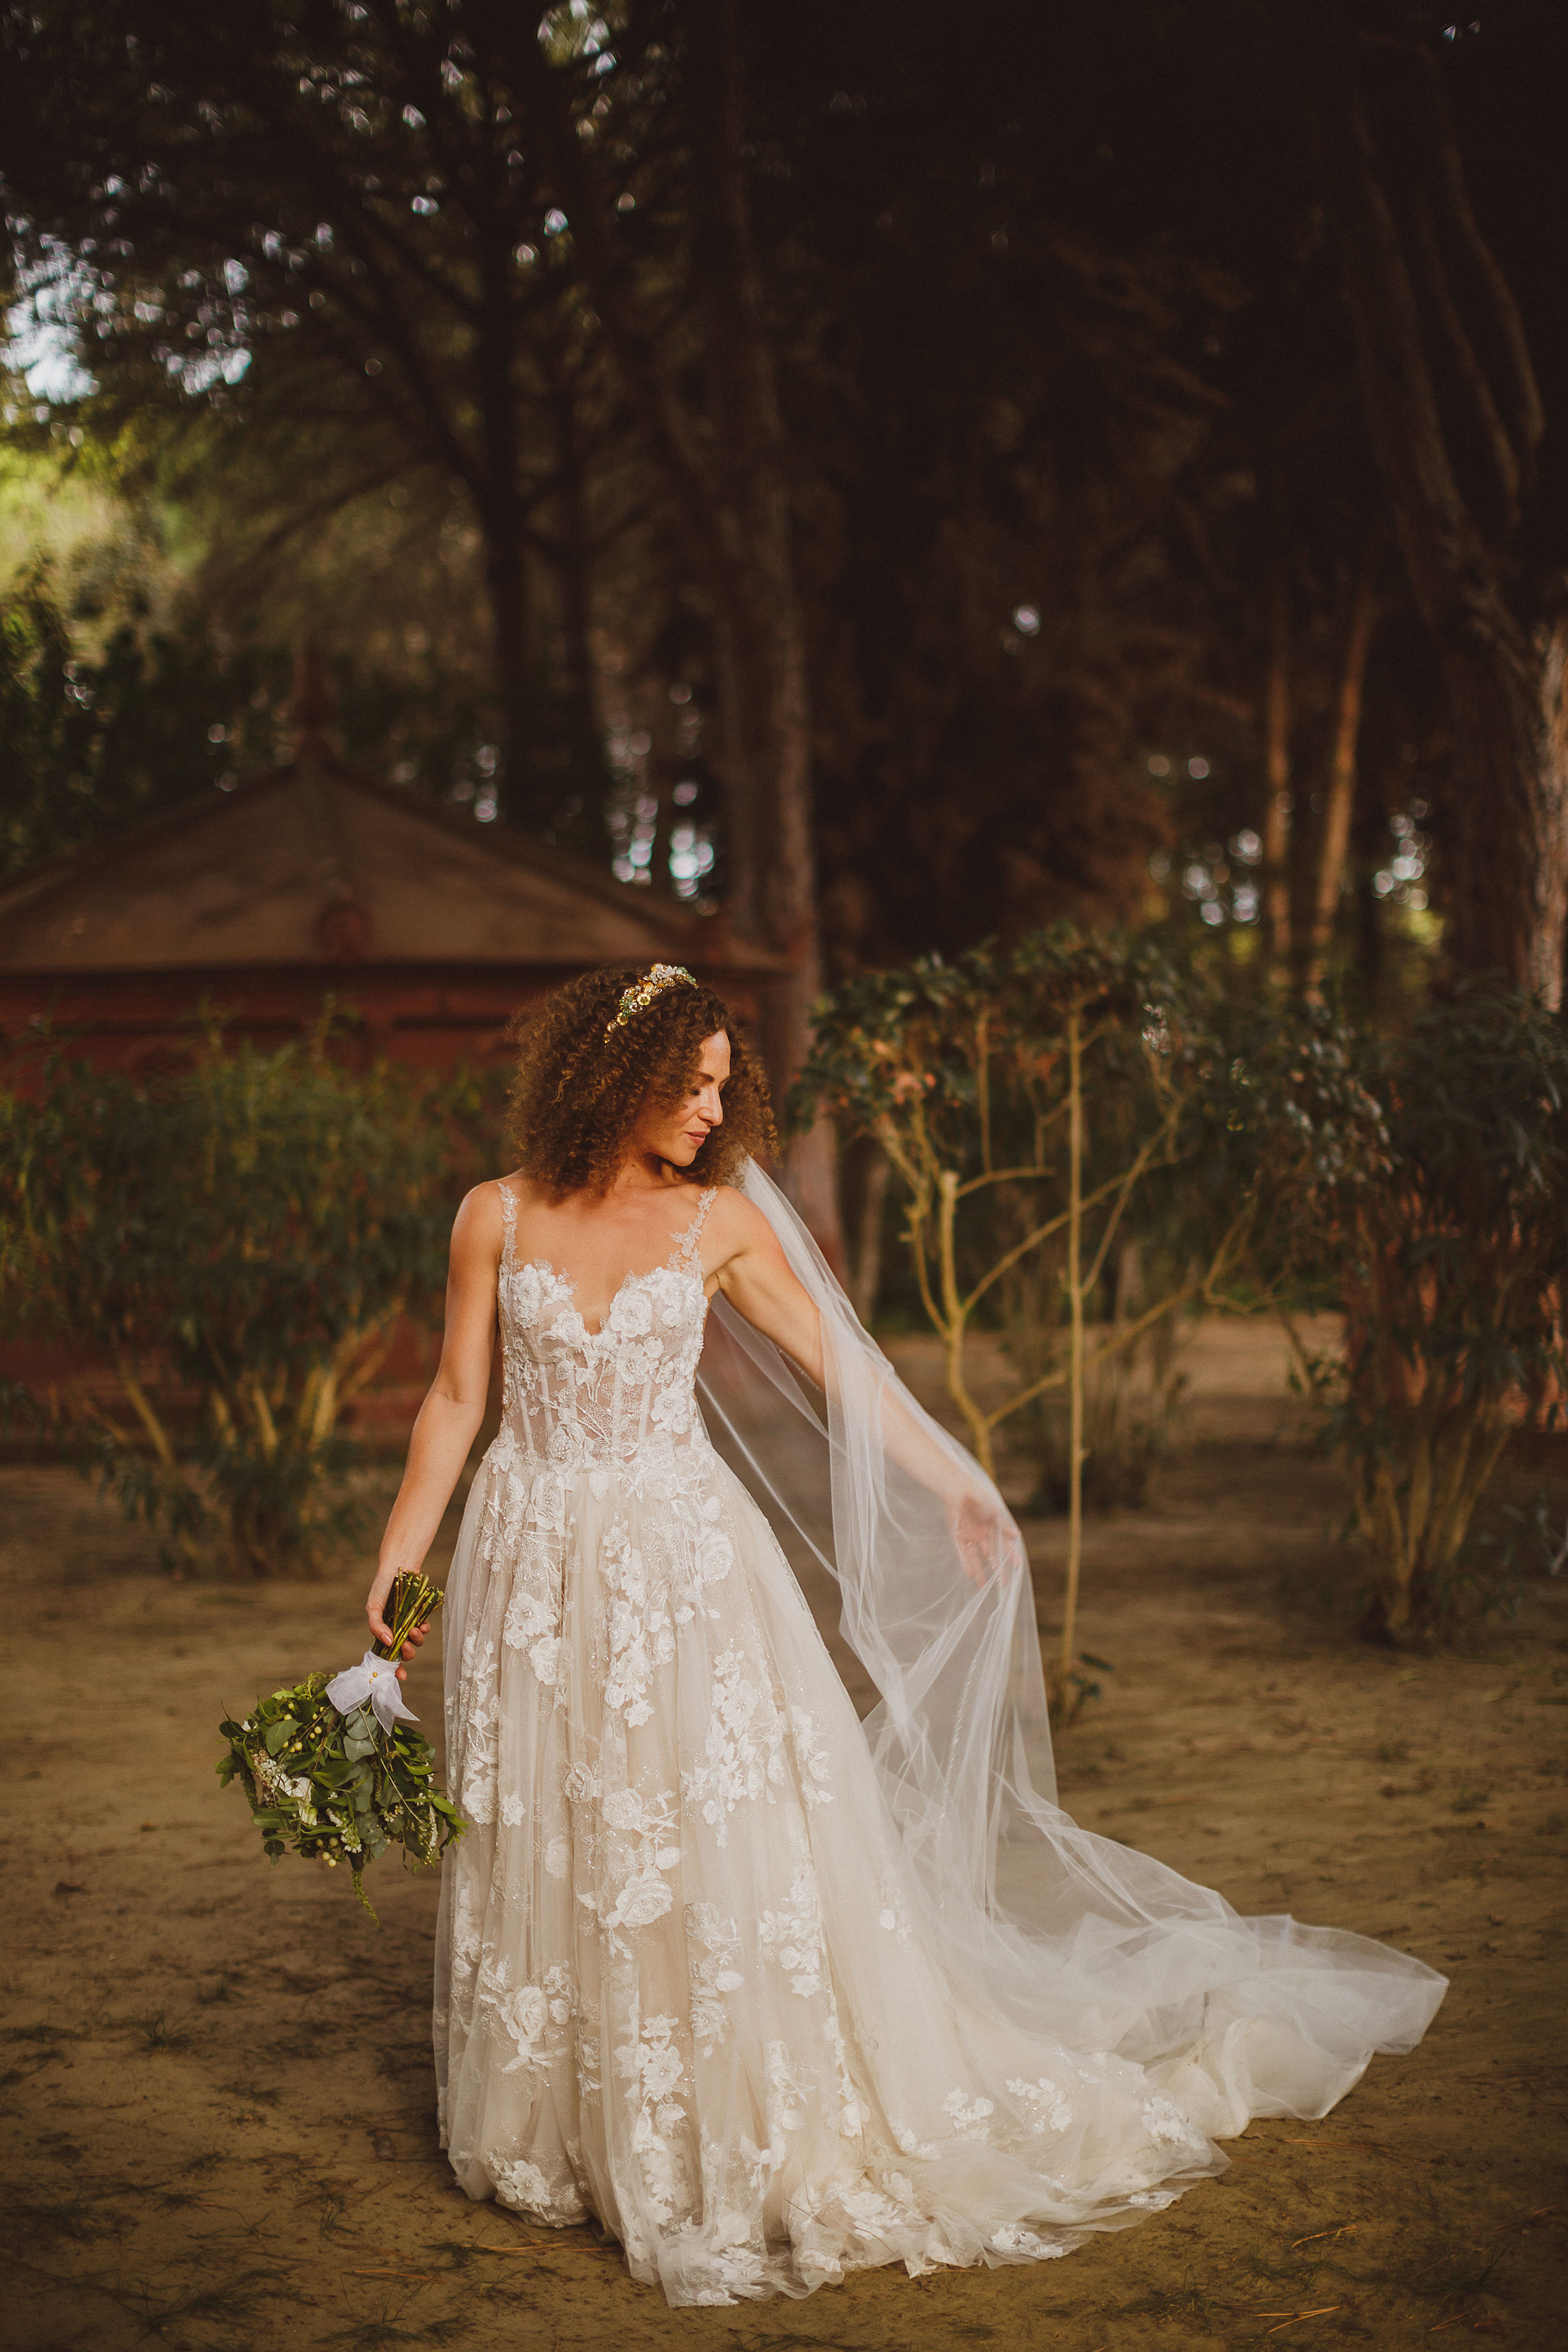 Rustic bridal portrait in wooded setting - photo by Ed Peers Photography